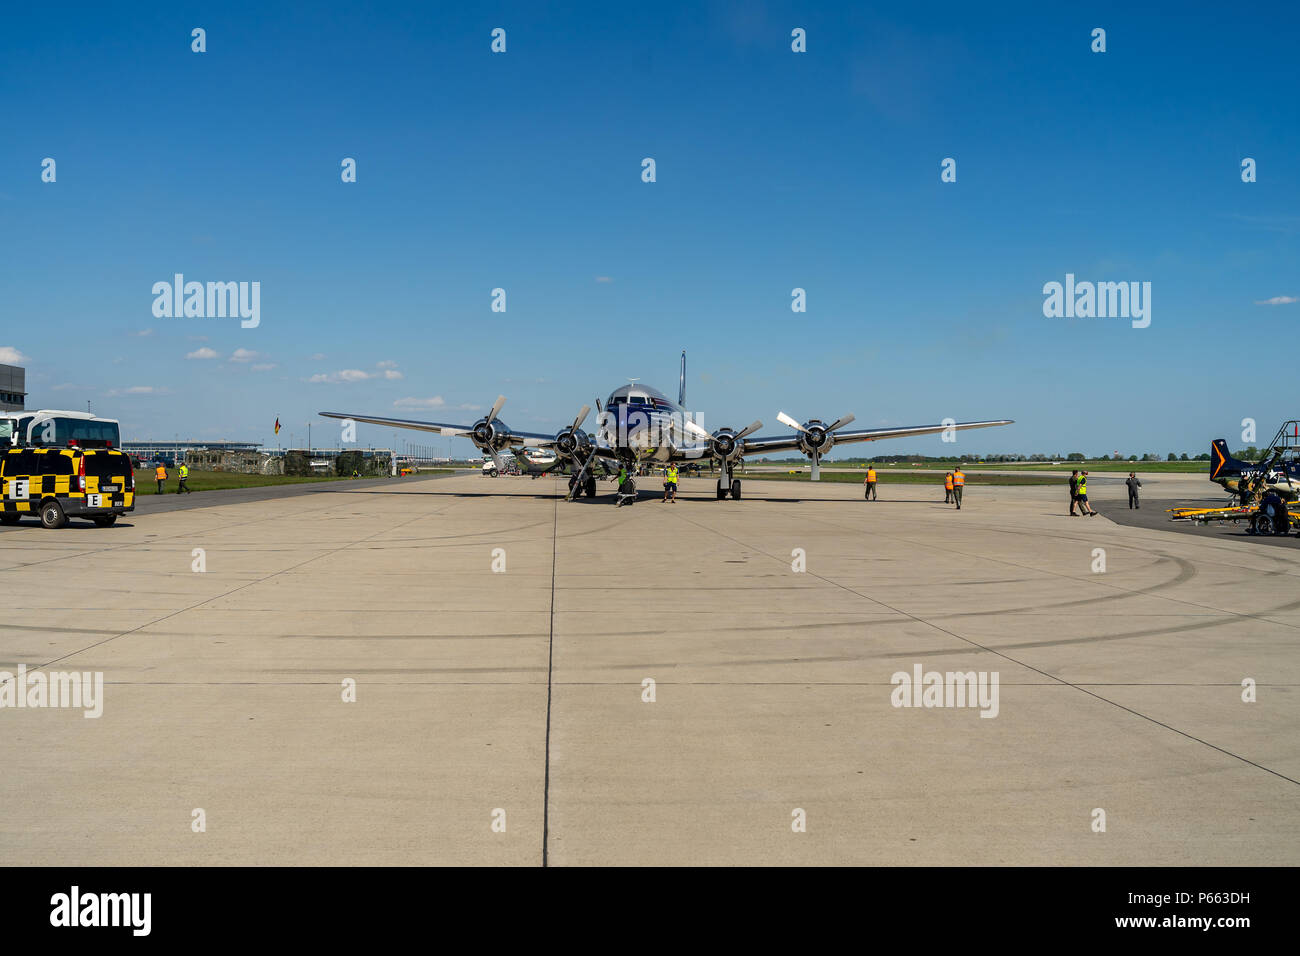 BERLIN - APRIL 28, 2018: The piston-powered airliner Douglas DC-6B on the airfield. Flying Bulls Team. Exhibition ILA Berlin Air Show 2018. - Stock Image